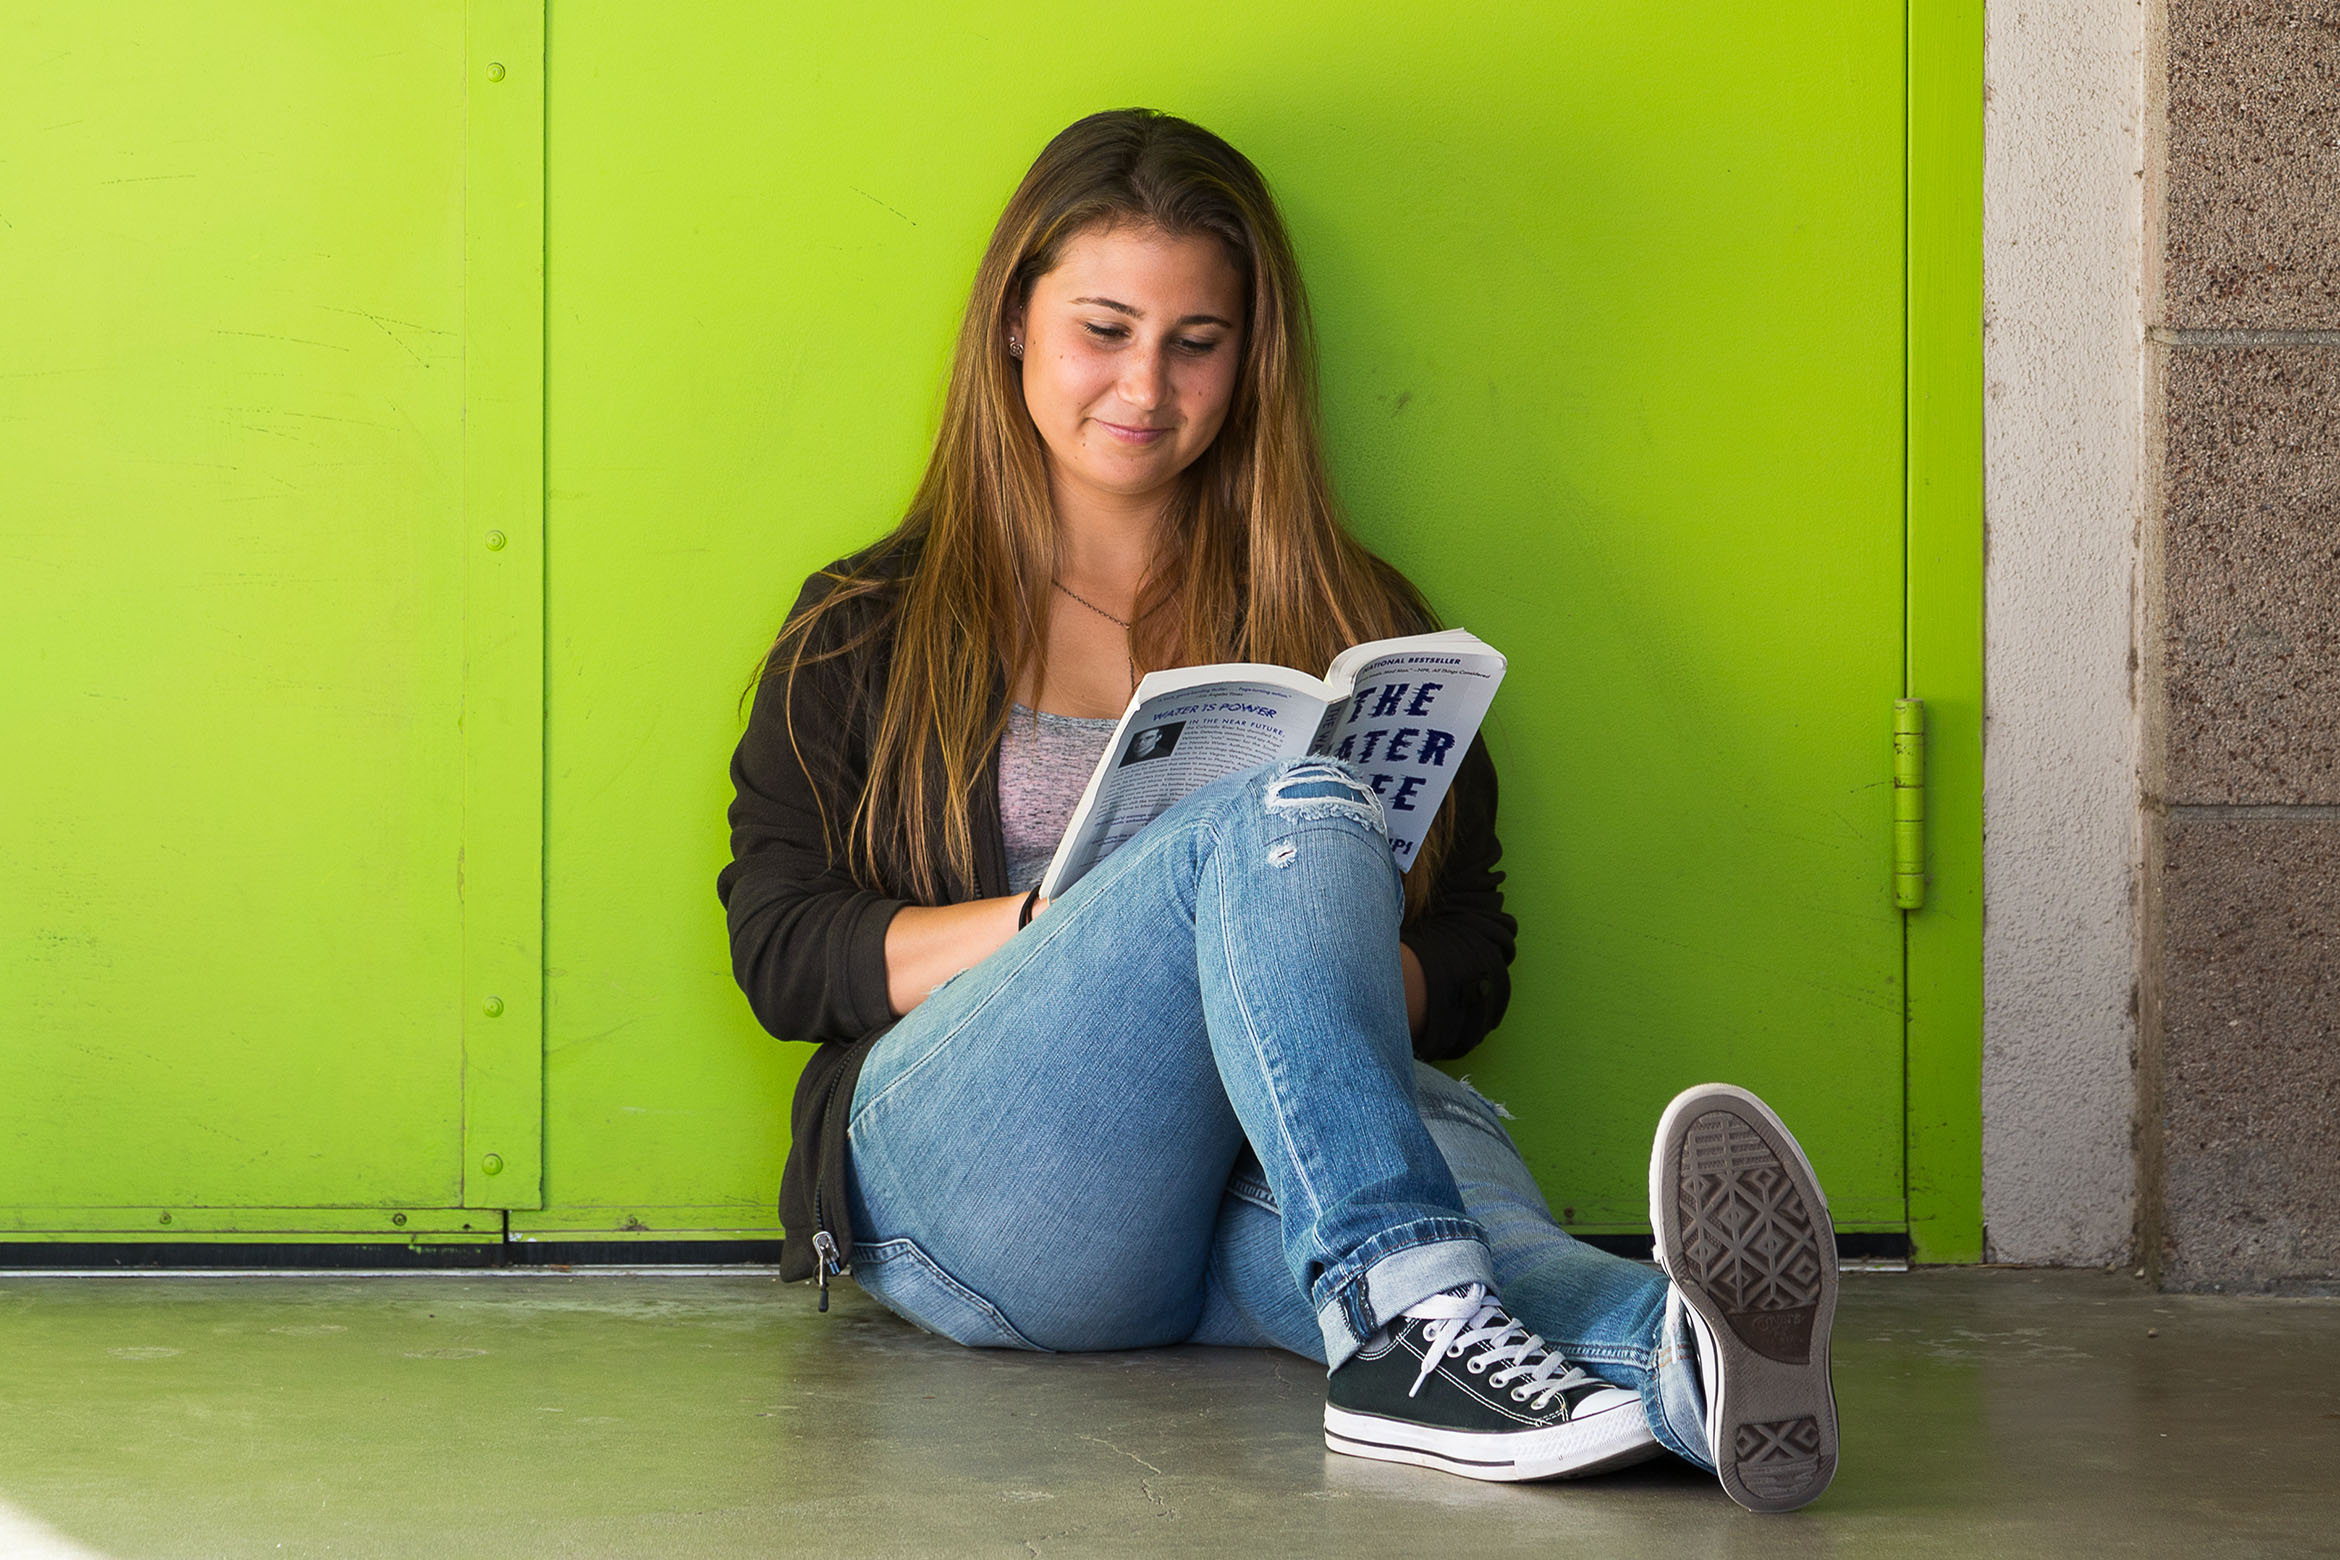 This is a student reading a book against a green wall.